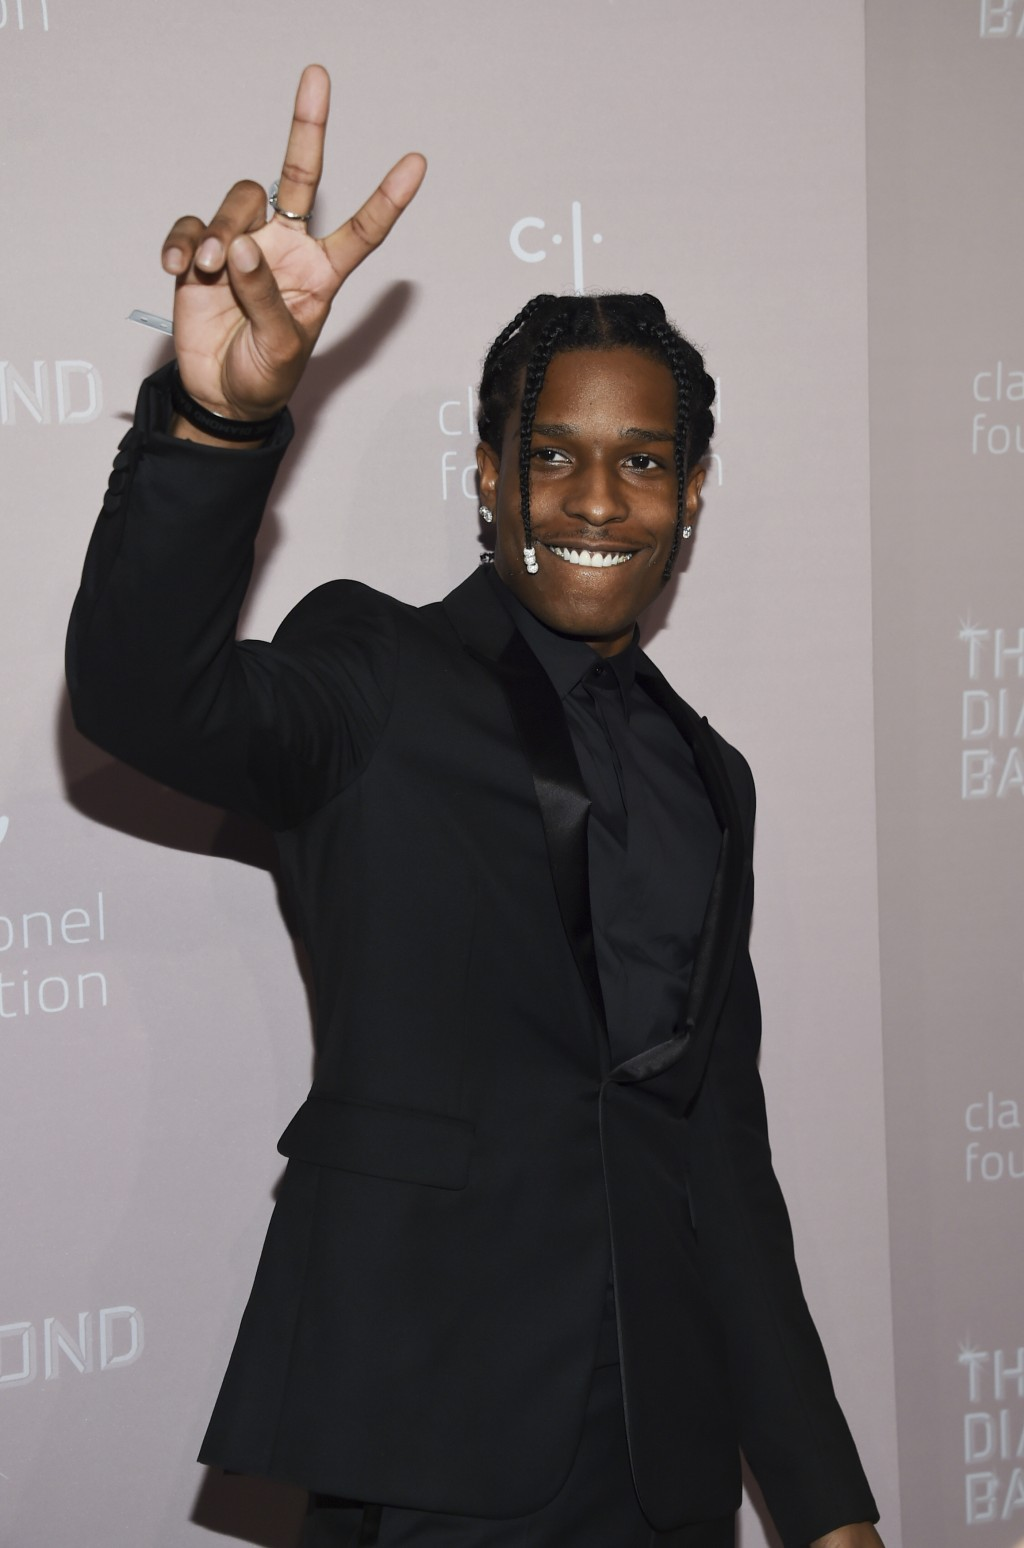 A$AP Rocky attends the 4th annual Diamond Ball at Cipriani Wall Street on Thursday, Sept. 13, 2018, in New York. (Photo by Evan Agostini/Invision/AP)